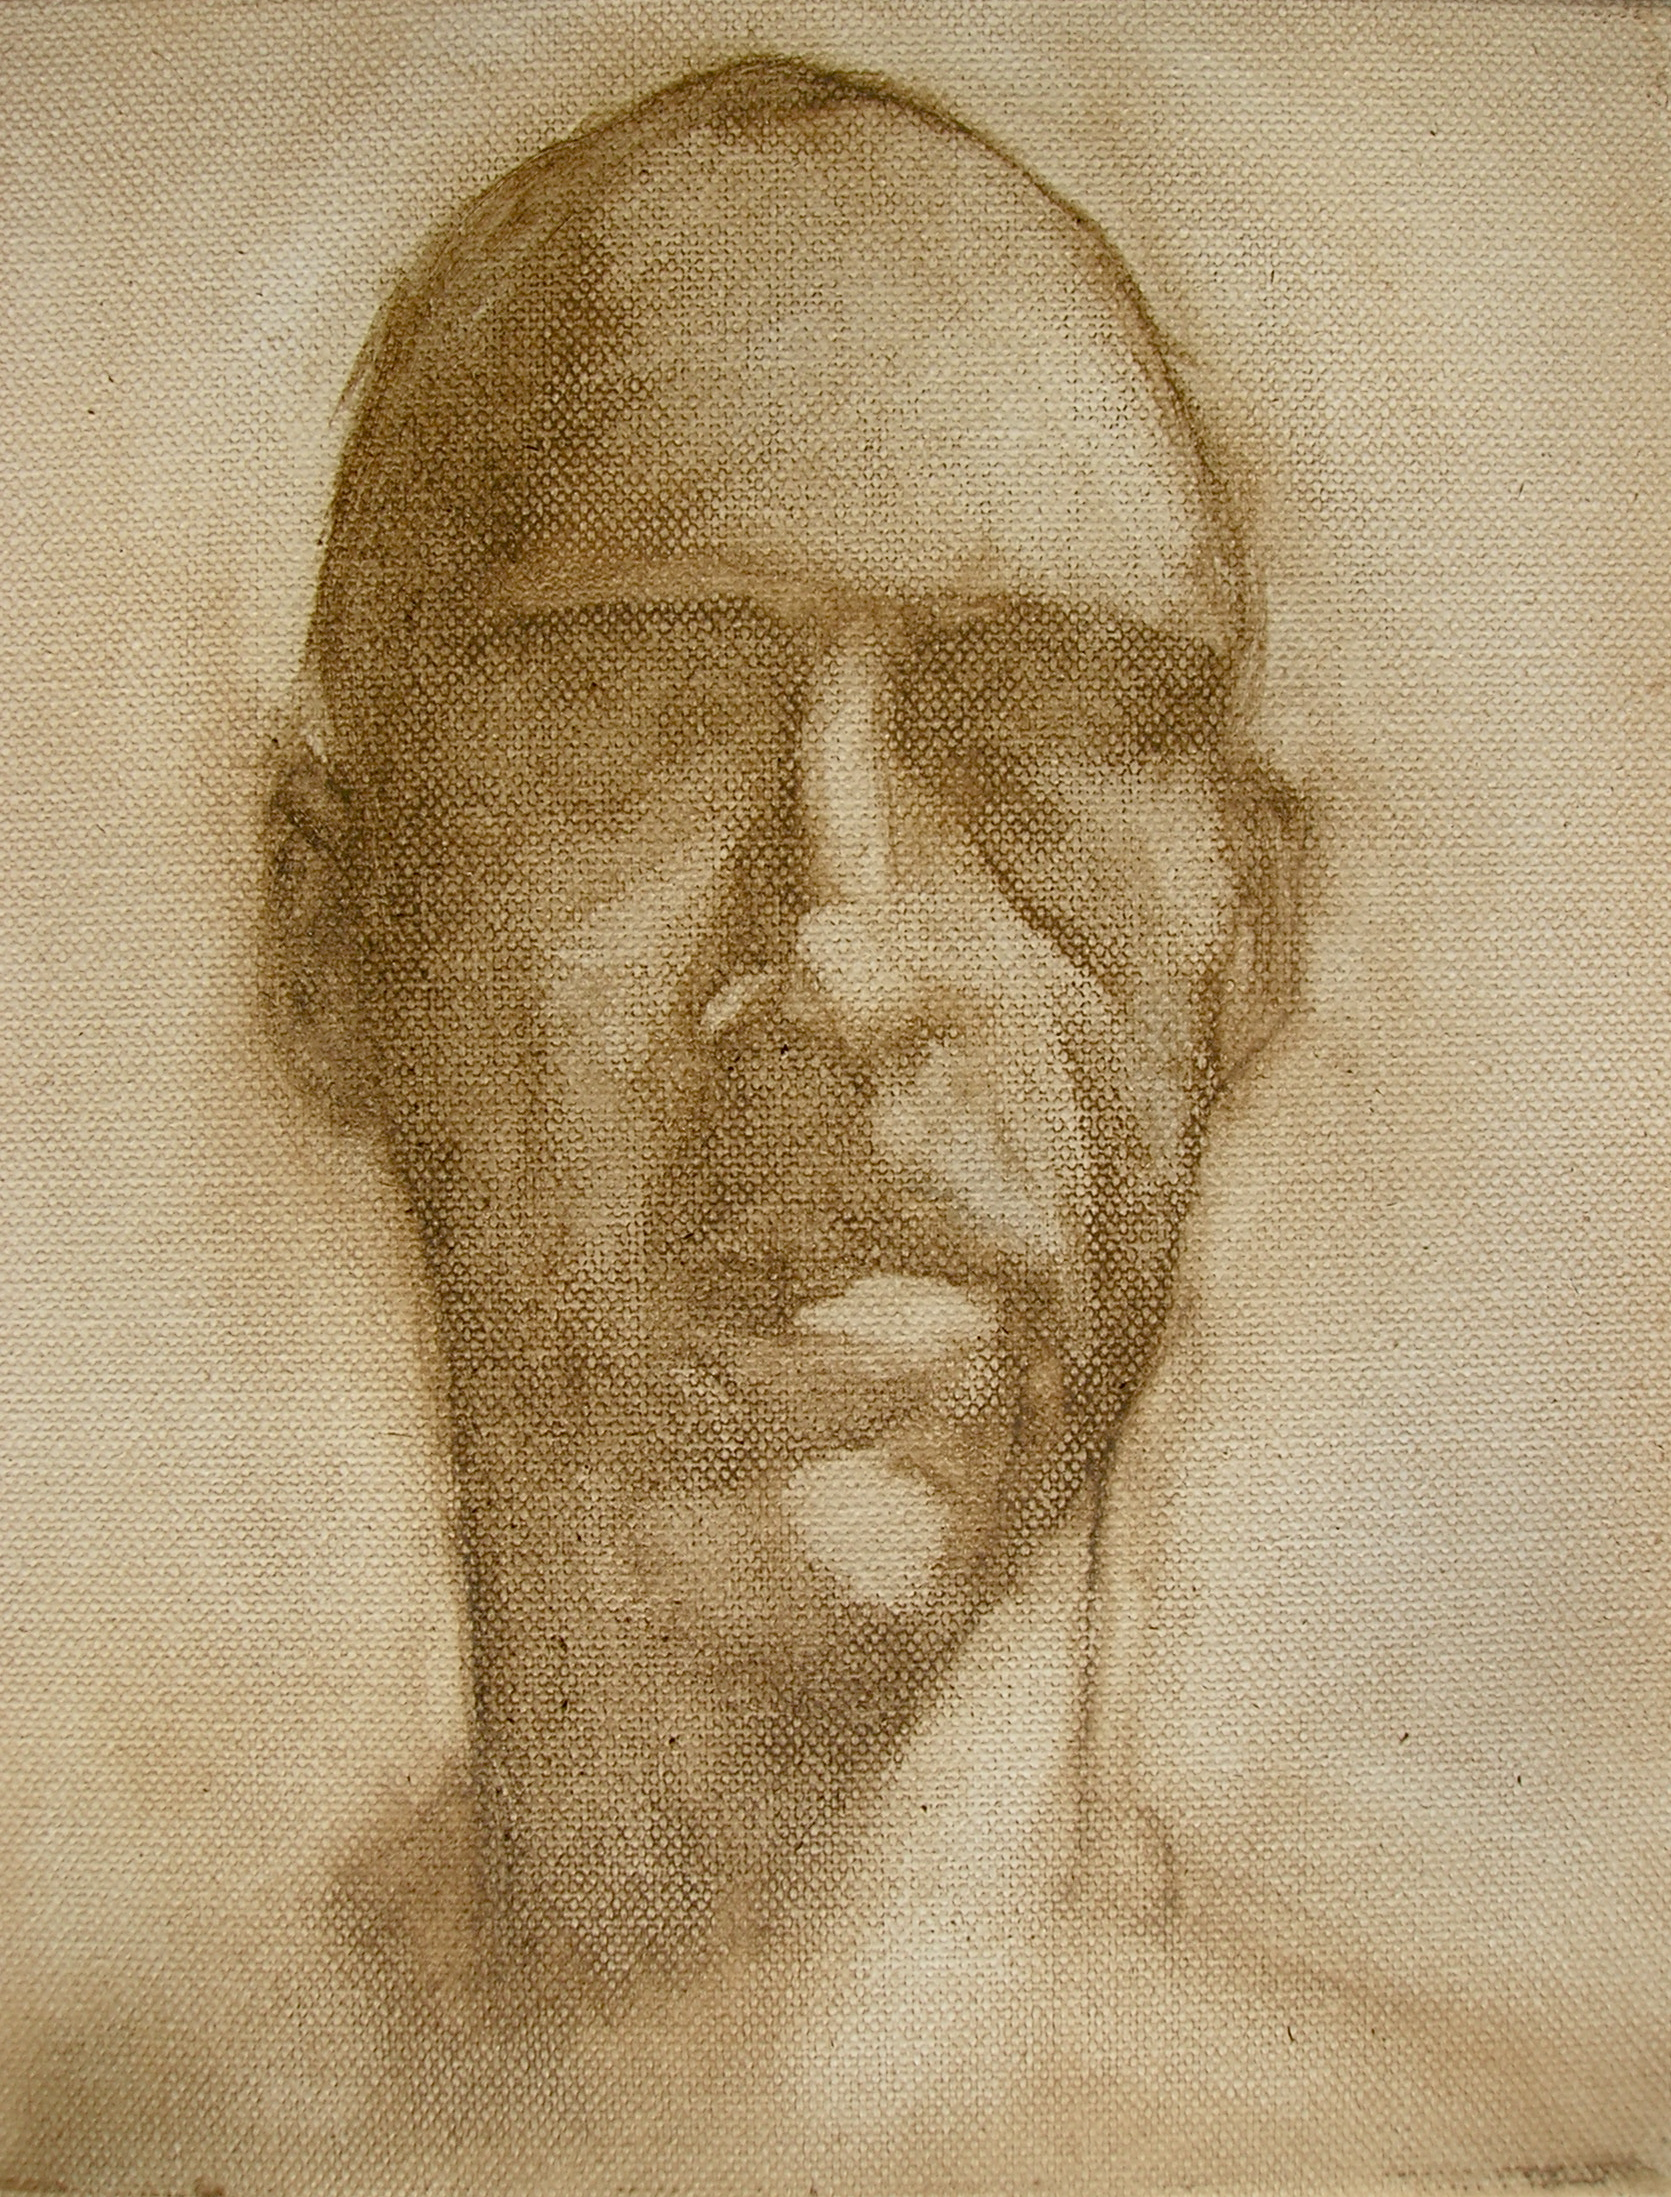 Head of a Man